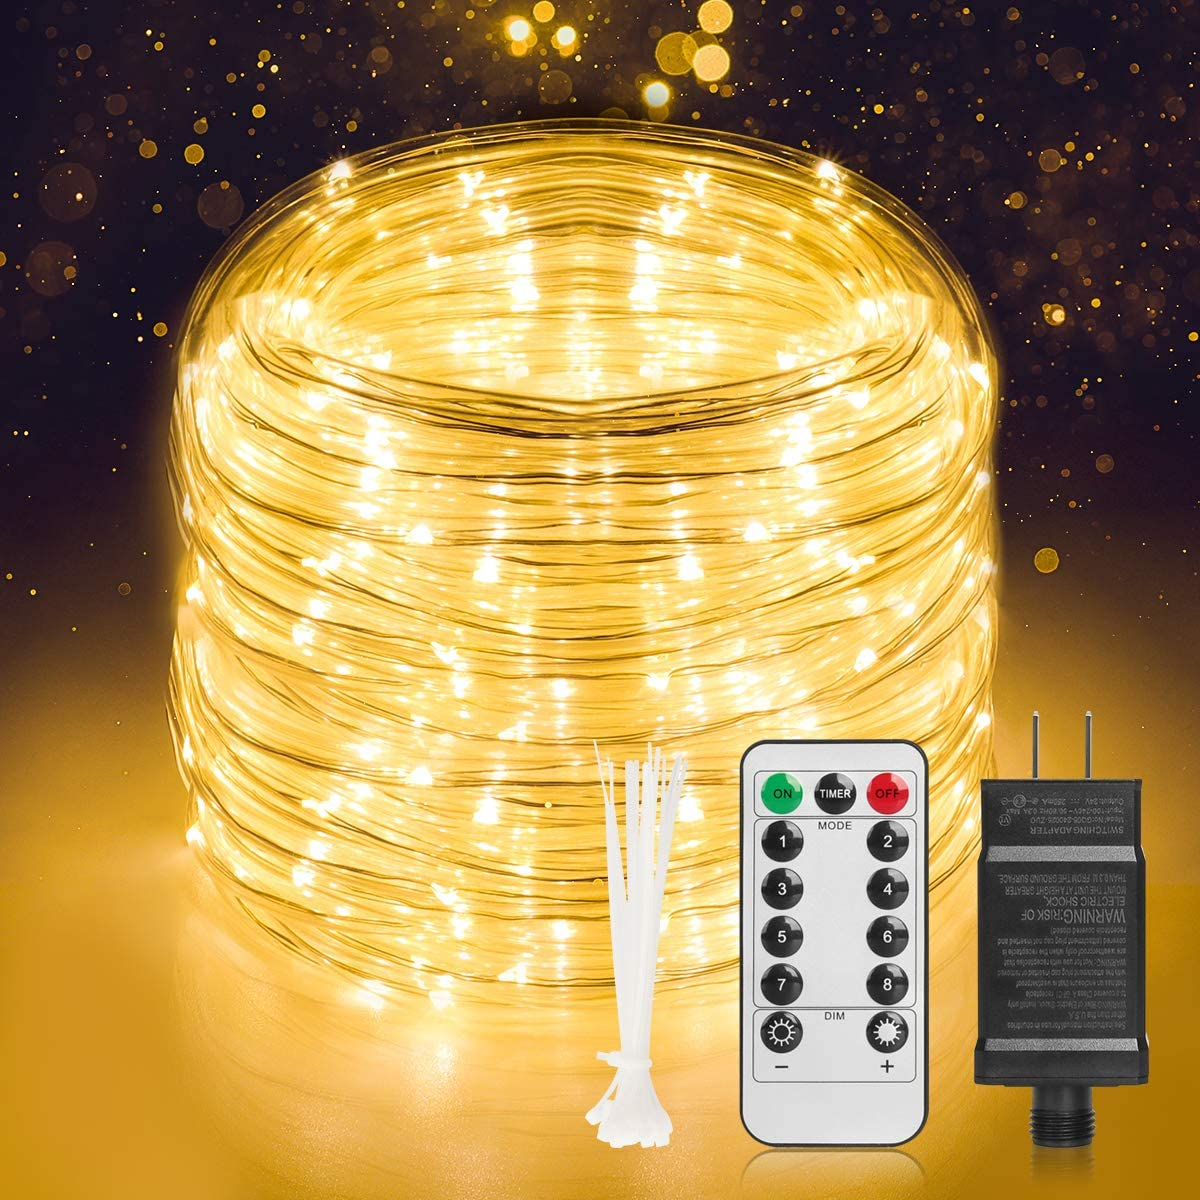 Led Rope Lights, 65.5 Ft Outdoor String Light 336 Led Color Changing Light 8 Modes Outdoor Waterproof Fairy Tale Light with Timing Dimming Remote Control for Party, Garden, Christmas Décor